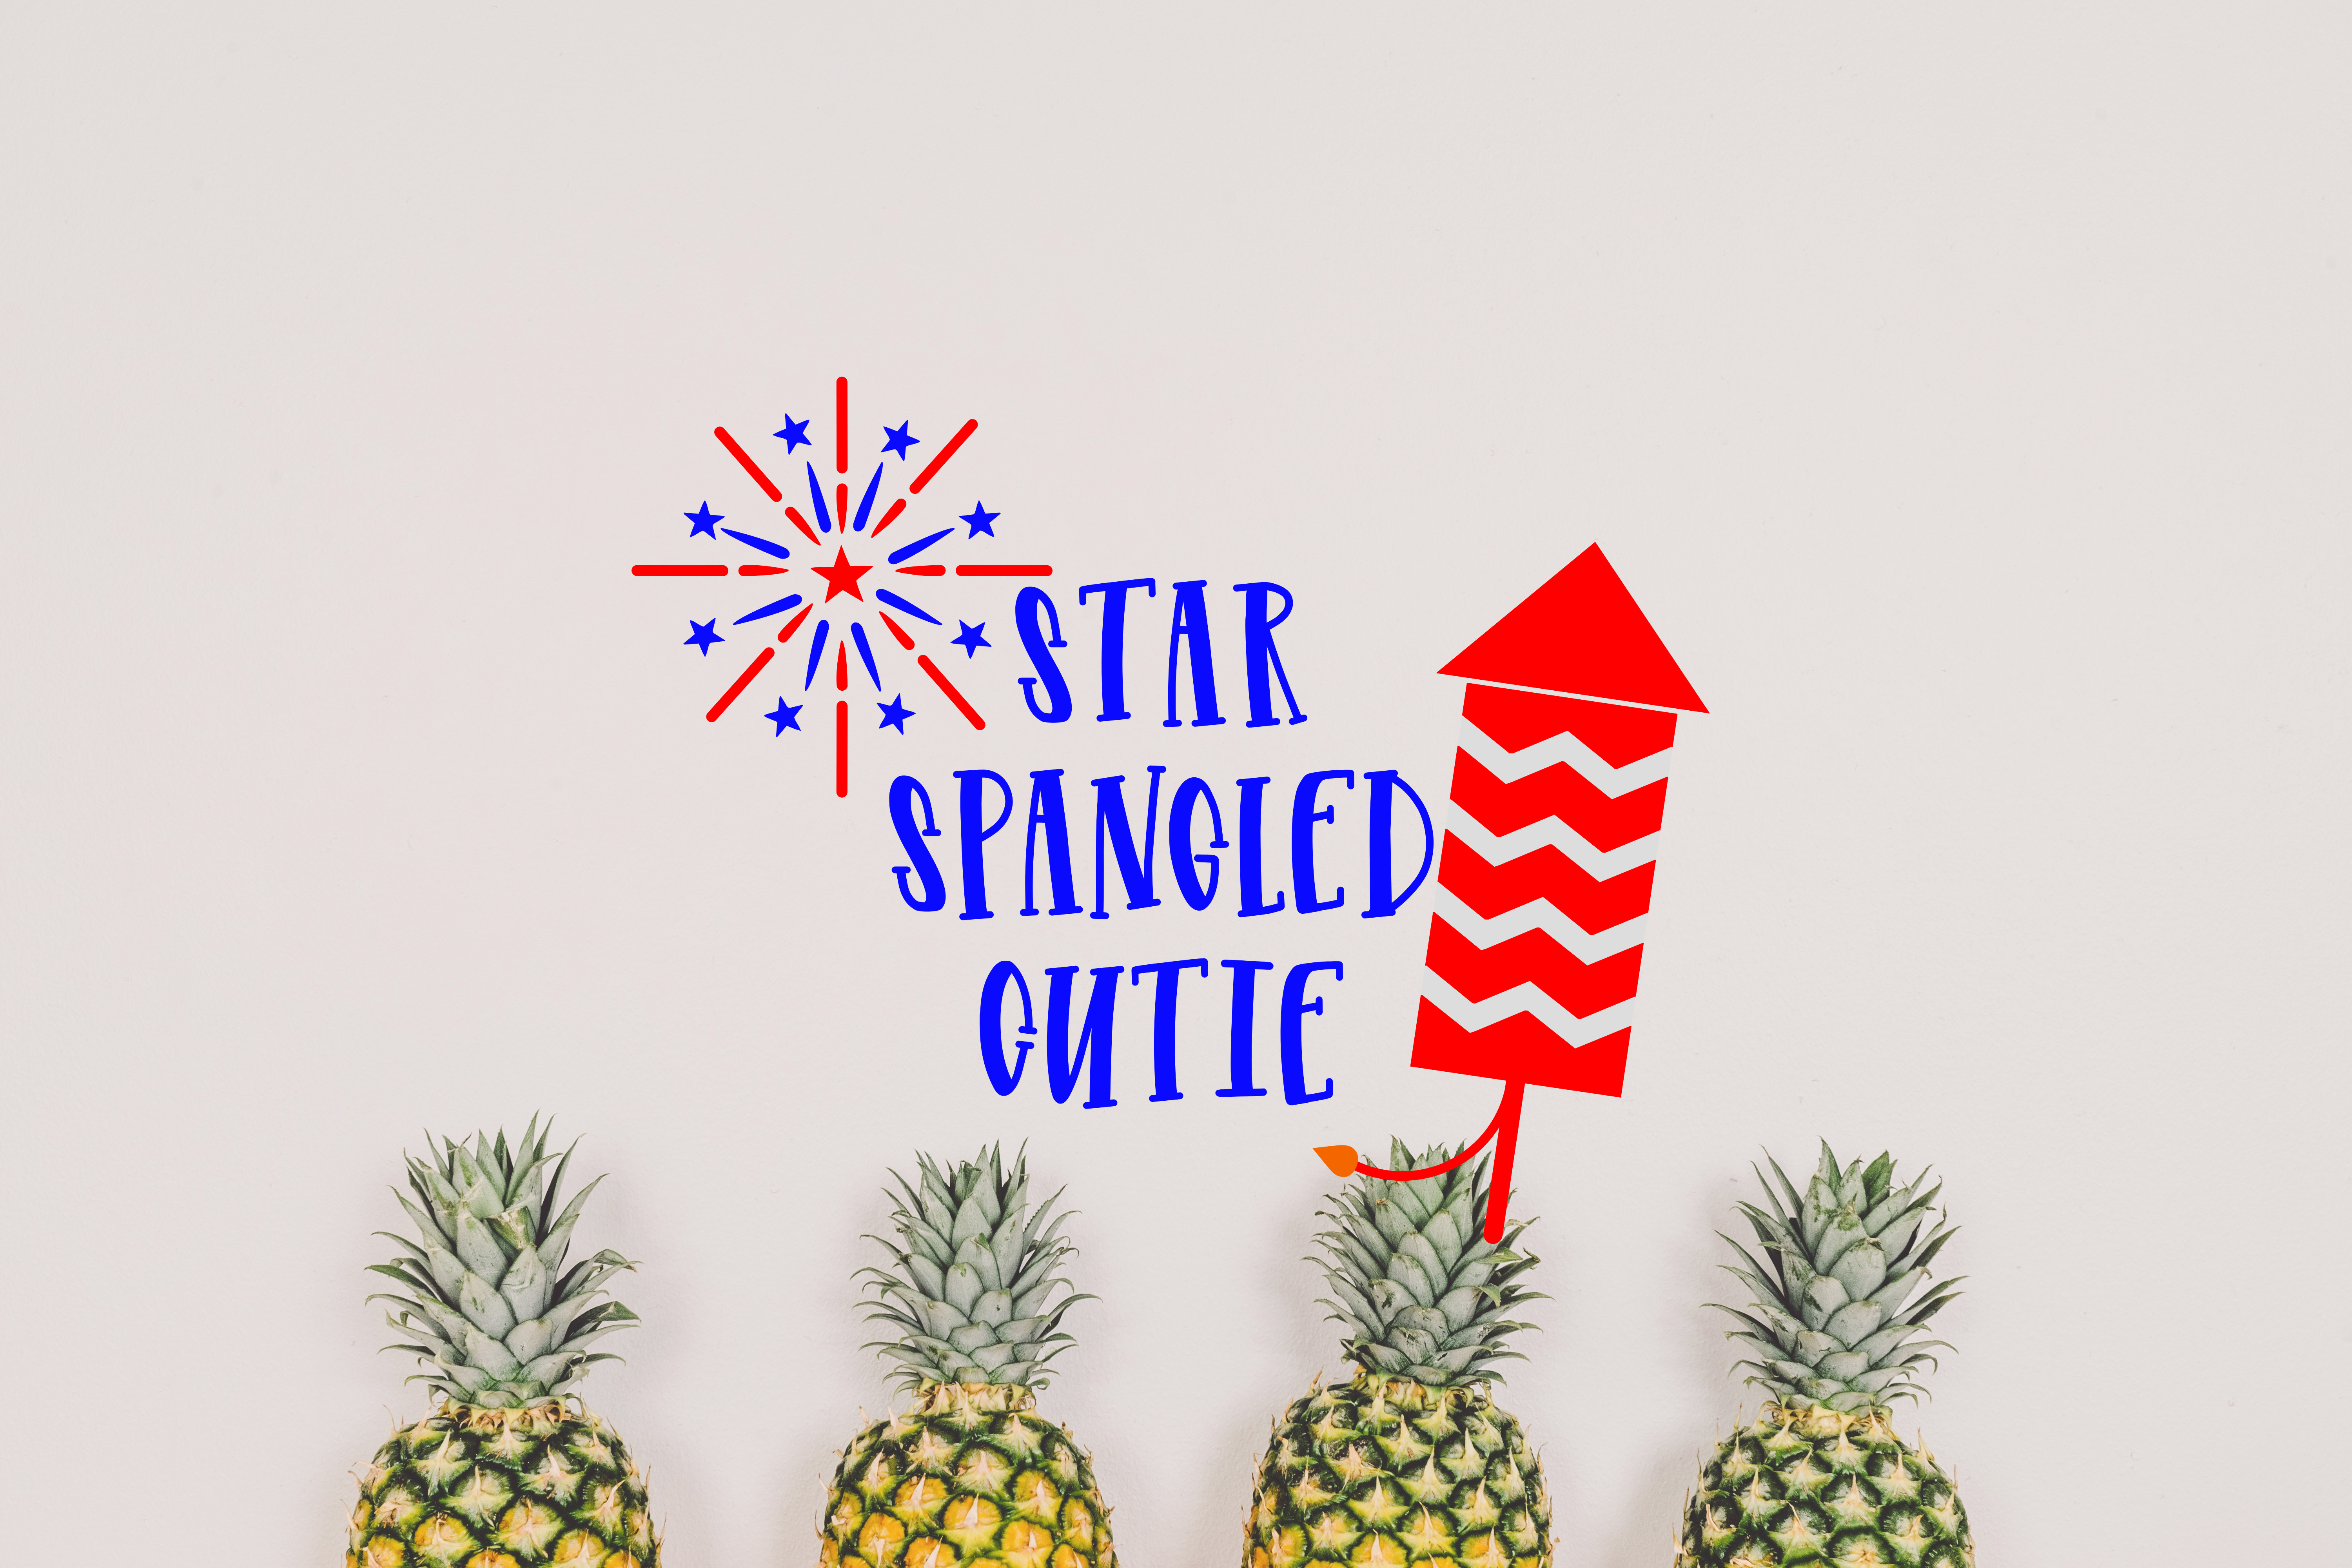 Download Free Star Spangled Cutie Svg Grafico Por Missseasonsvinylcuts for Cricut Explore, Silhouette and other cutting machines.